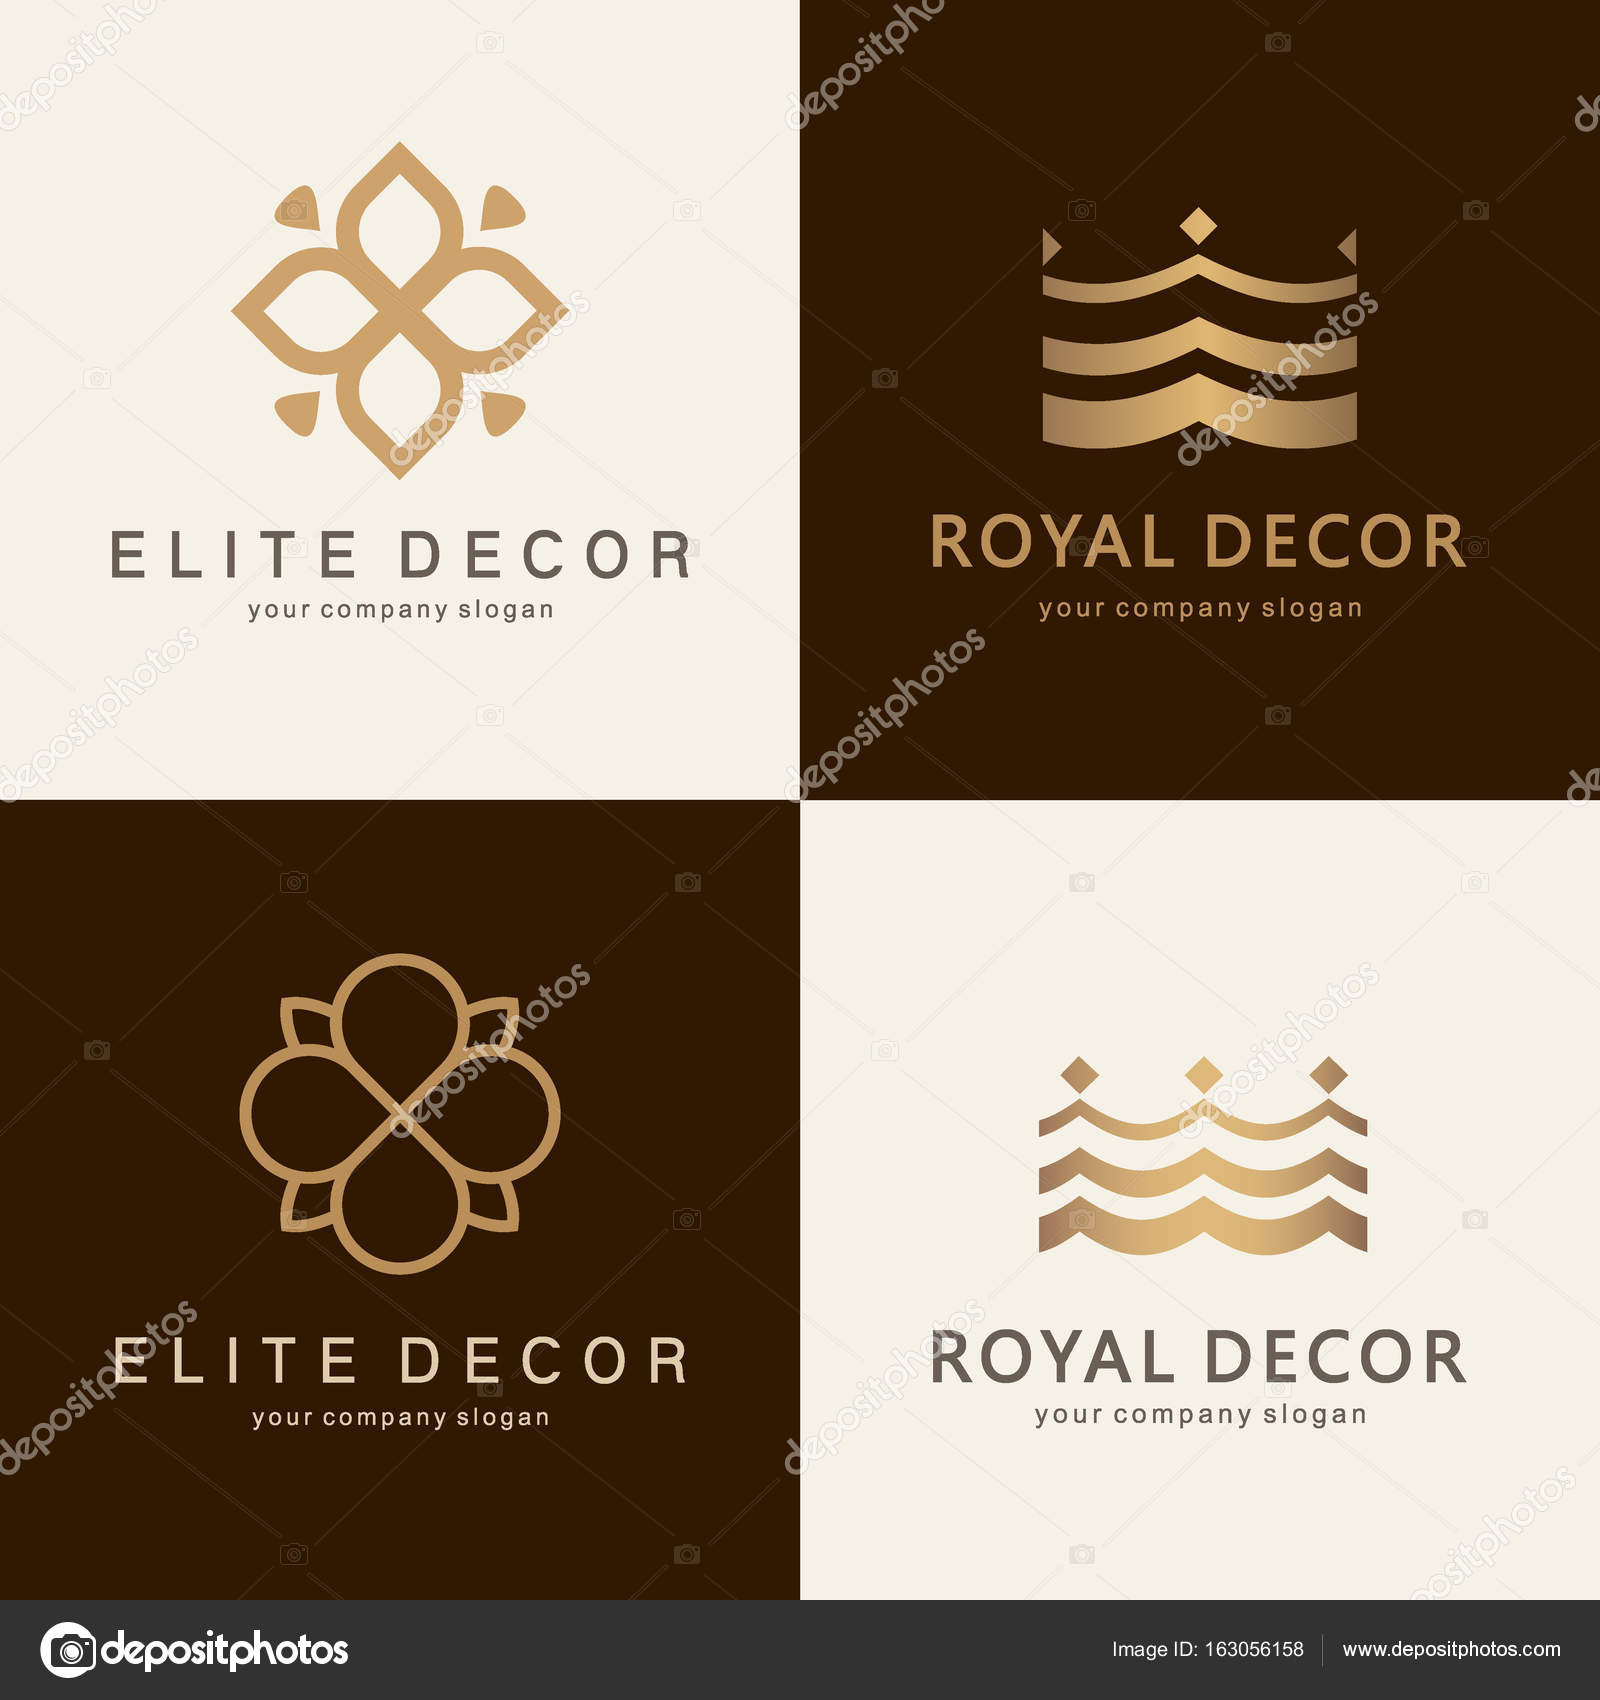 A Collection Of Logos For Interior Furniture Shops Decor Items And Home Decoration Stock Vector C Kar Chik 163056158